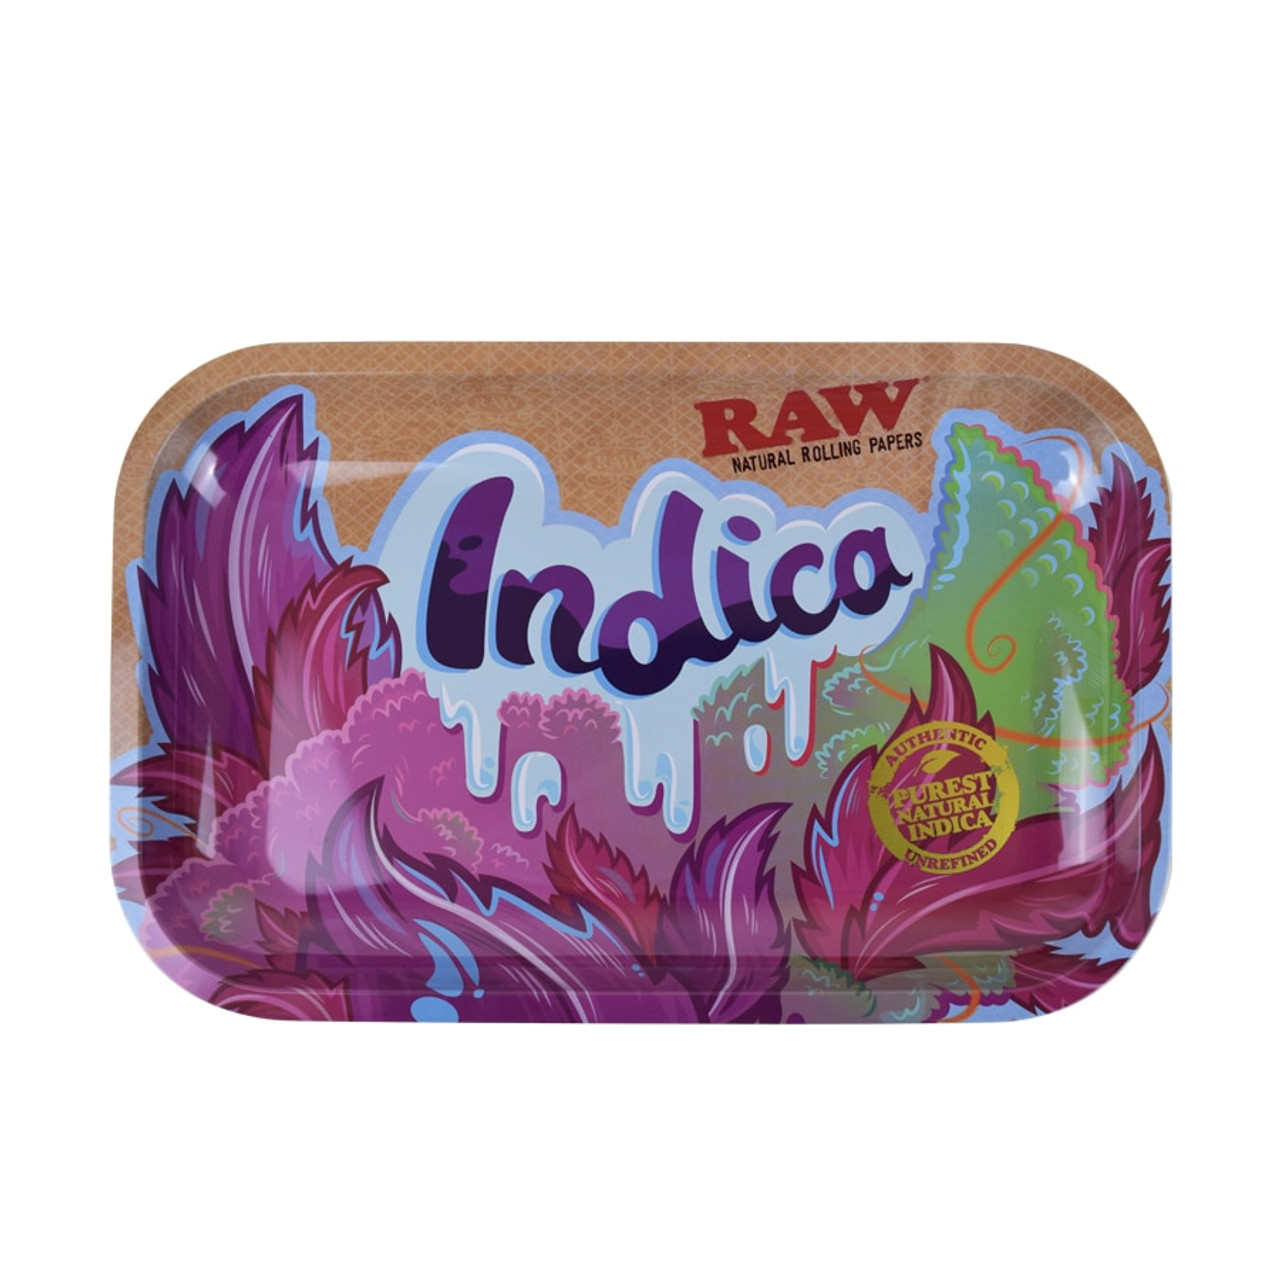 RAW RAW Indica Metal Rolling Tray Small at The Cloud Supply